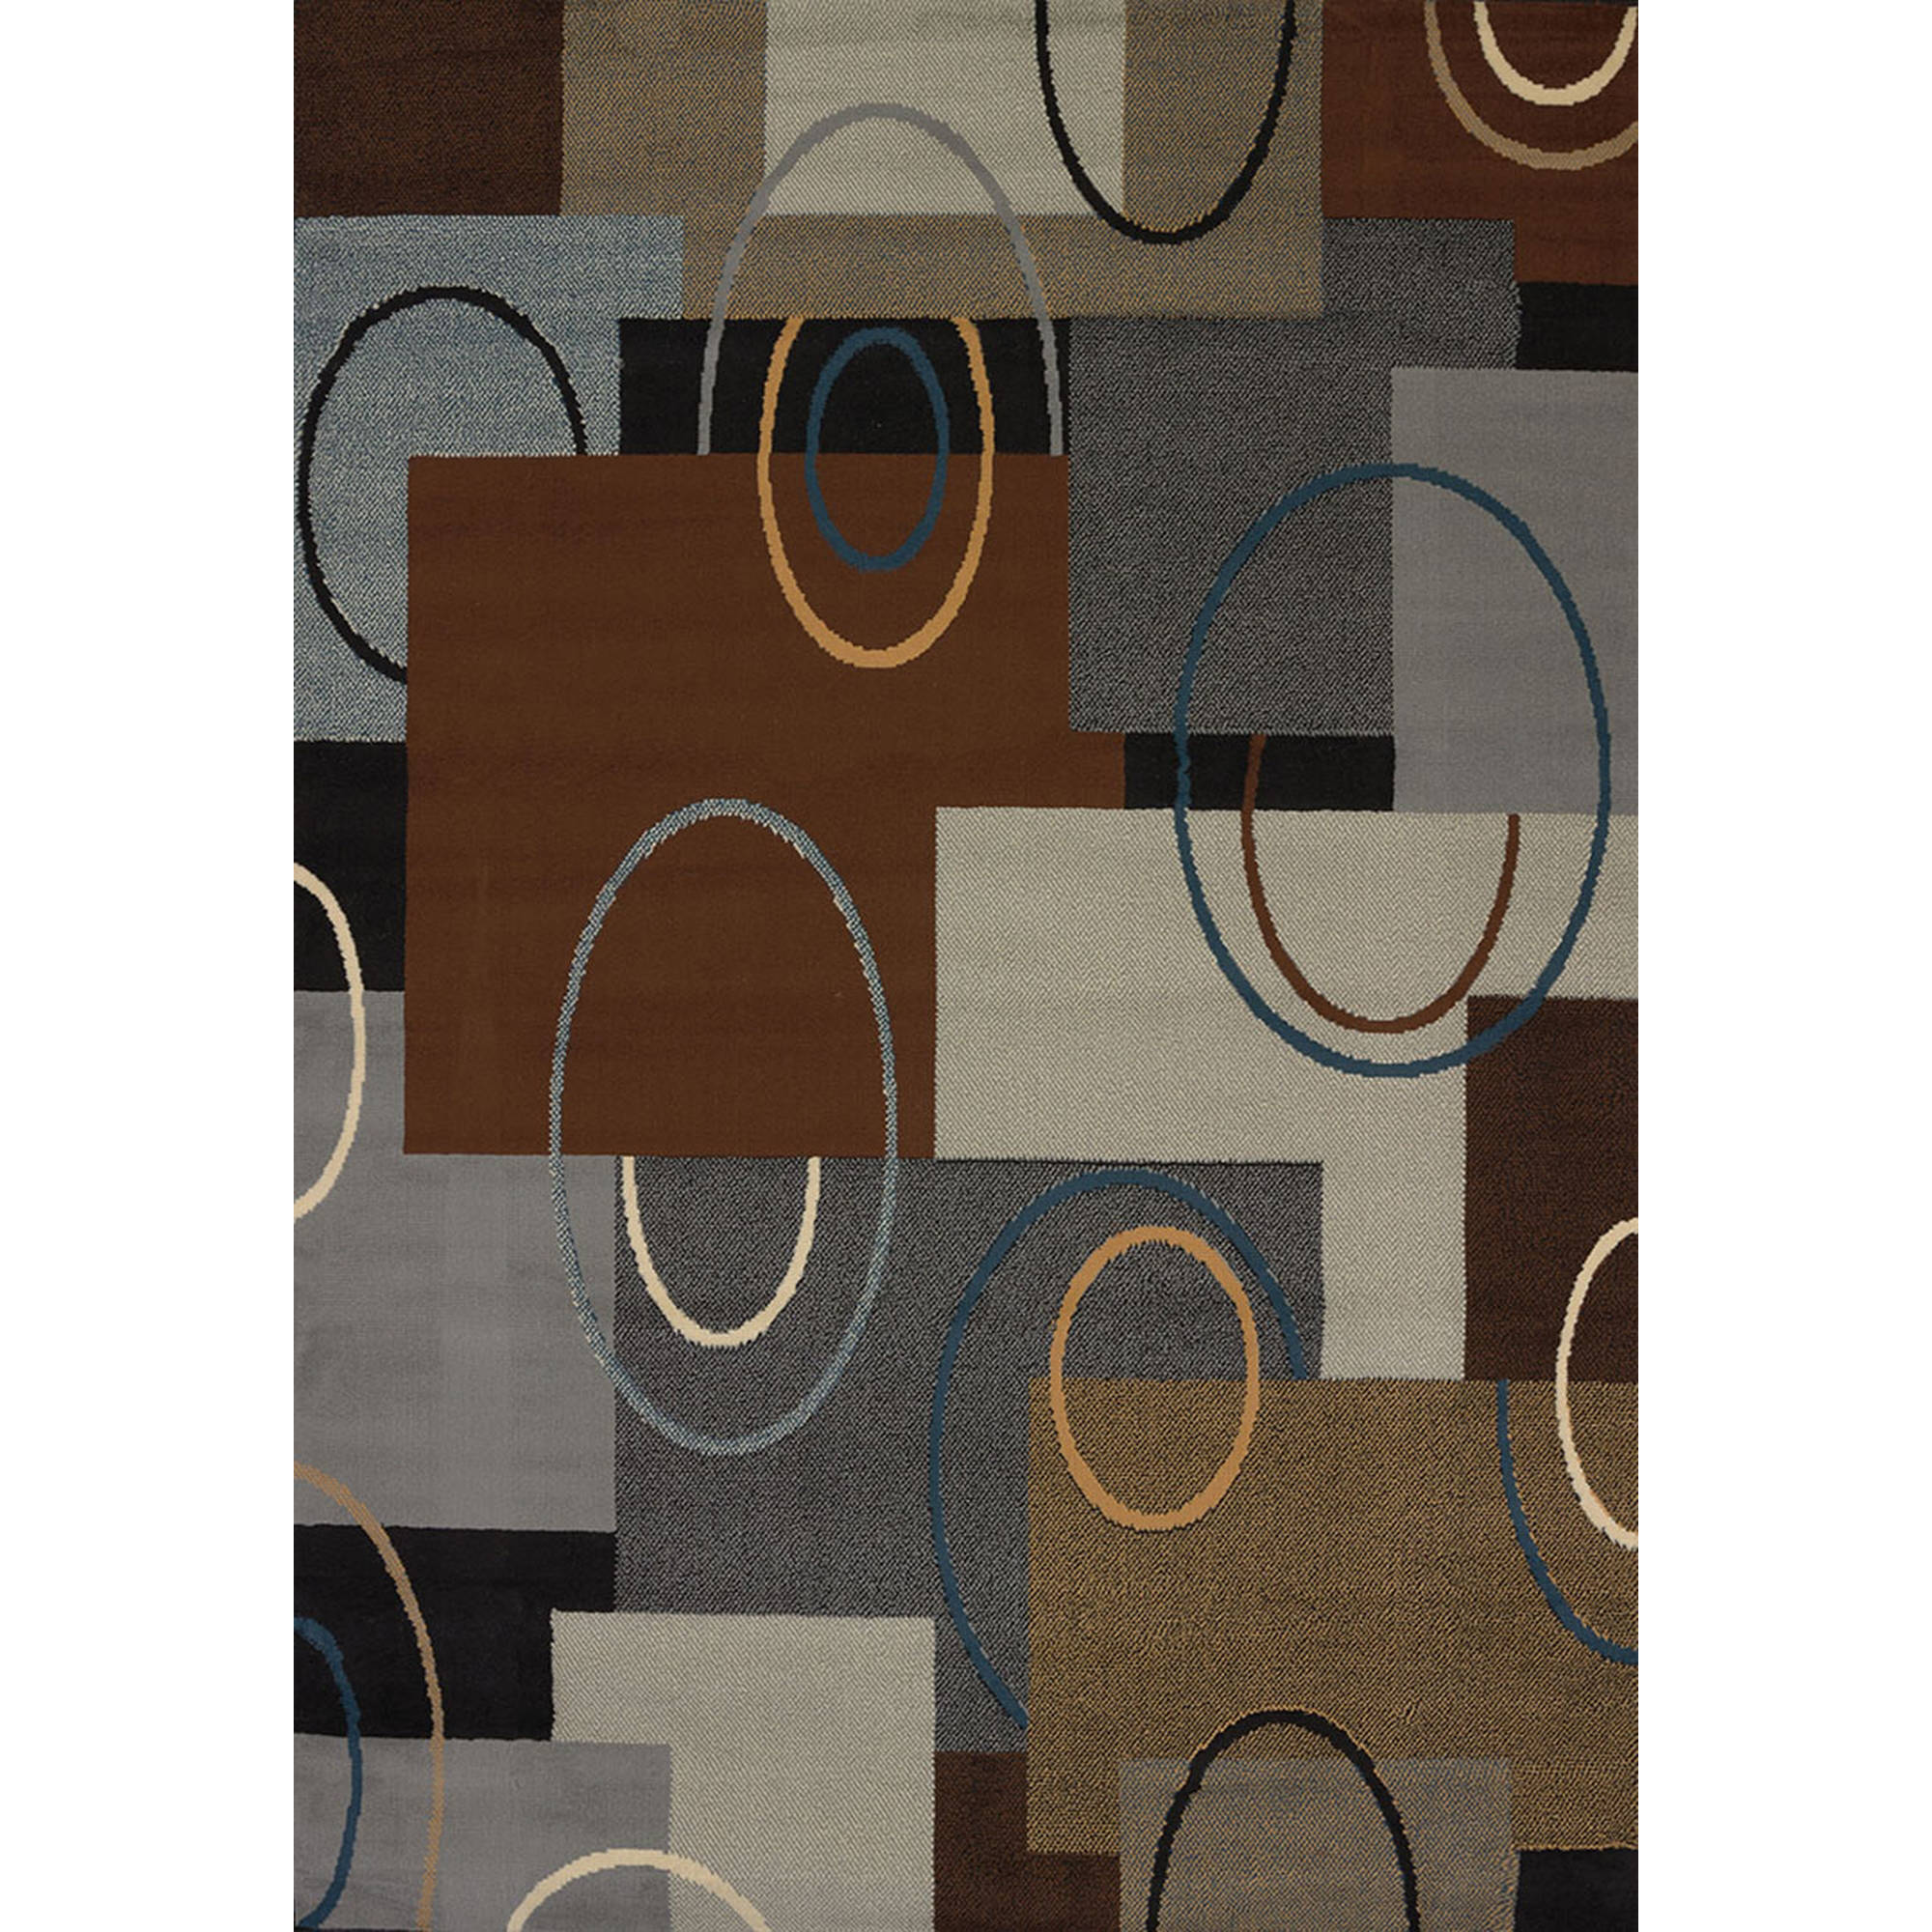 United Weavers Brunswick Bella Multi Woven Olefin Scatter Rug